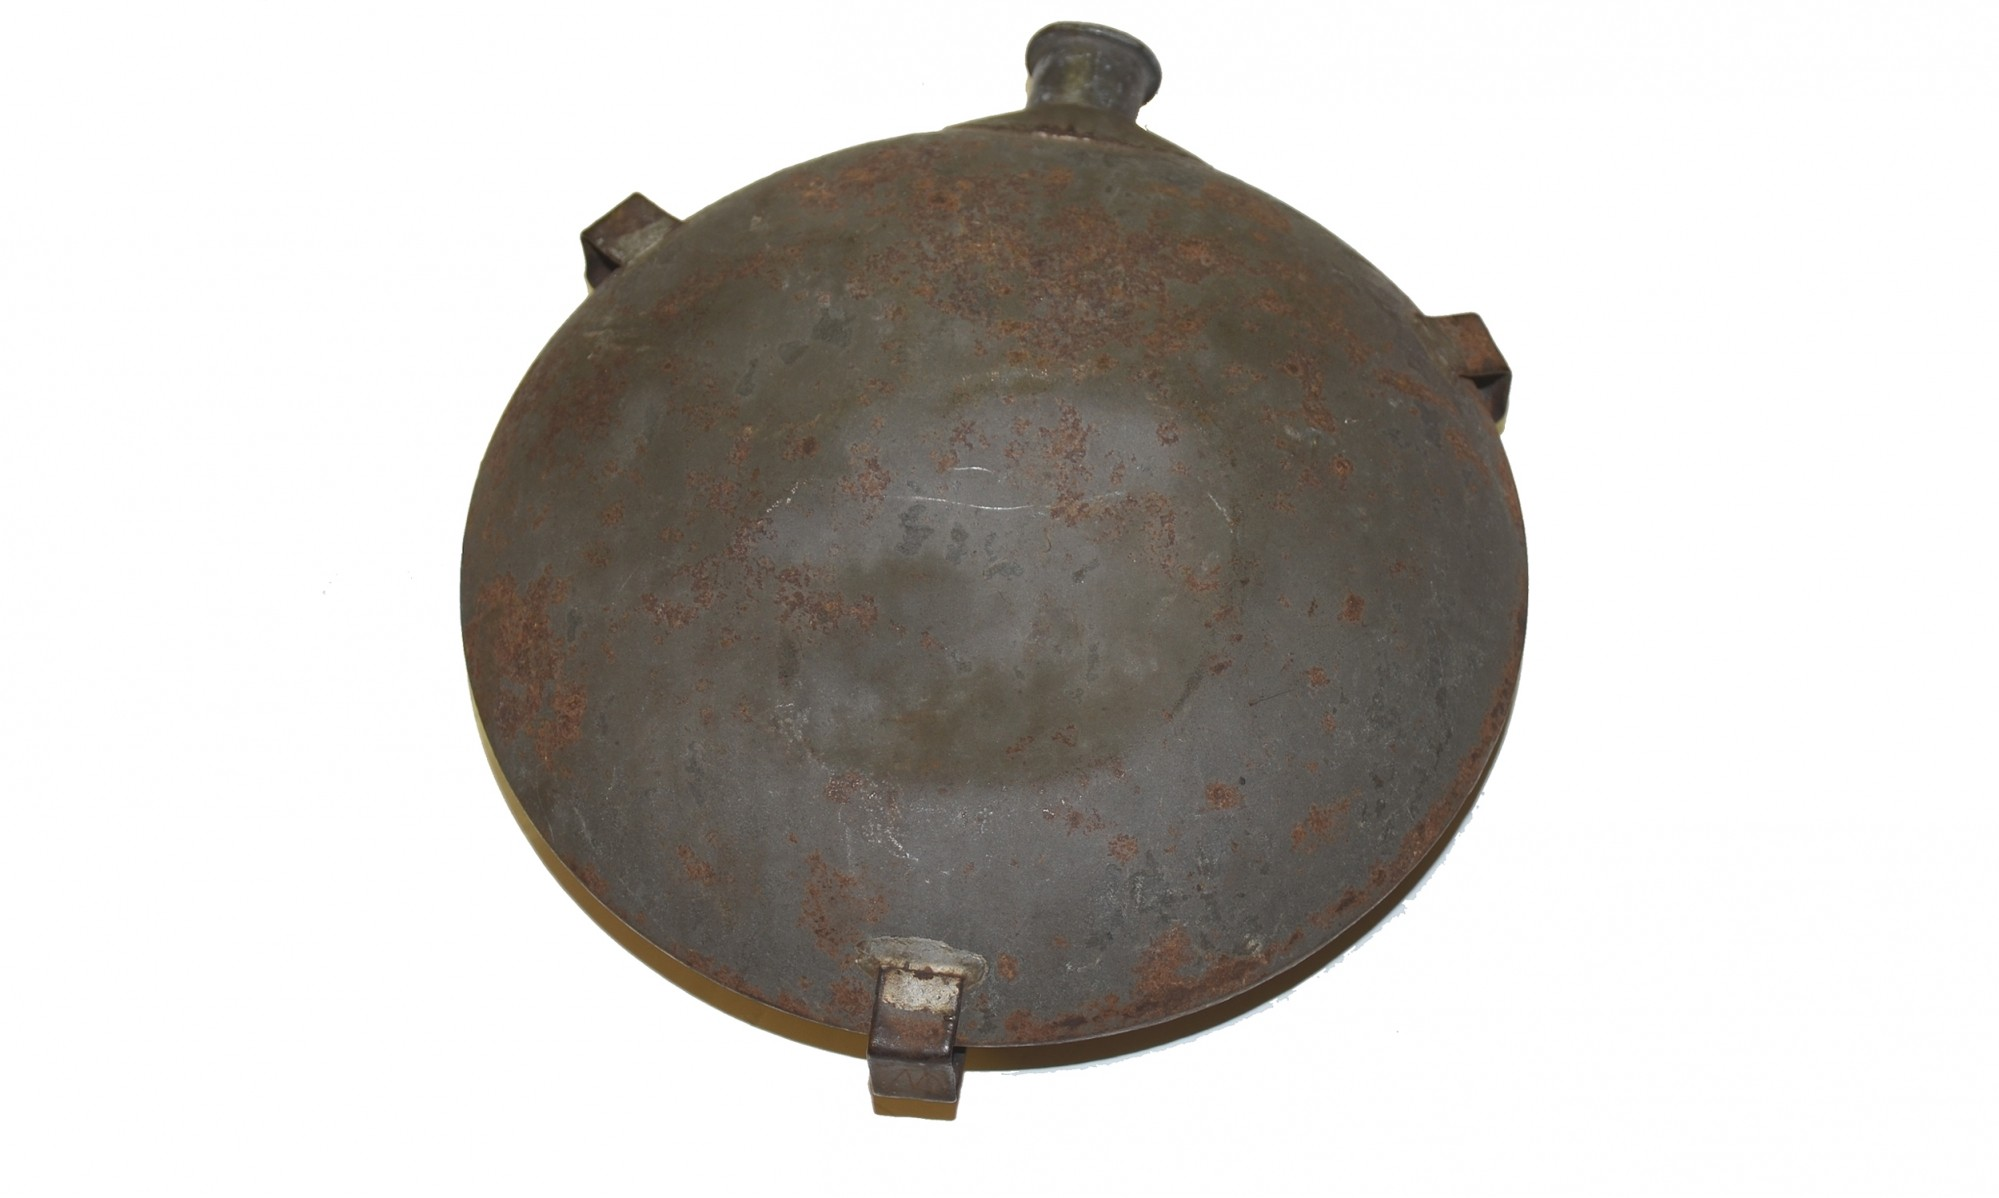 ORIGINAL, M1858 'SMOOTHSIDE' CANTEEN CARRIED BY PRIVATE OLIVER C. CASE, 8TH CONNECTICUT INFANTRY